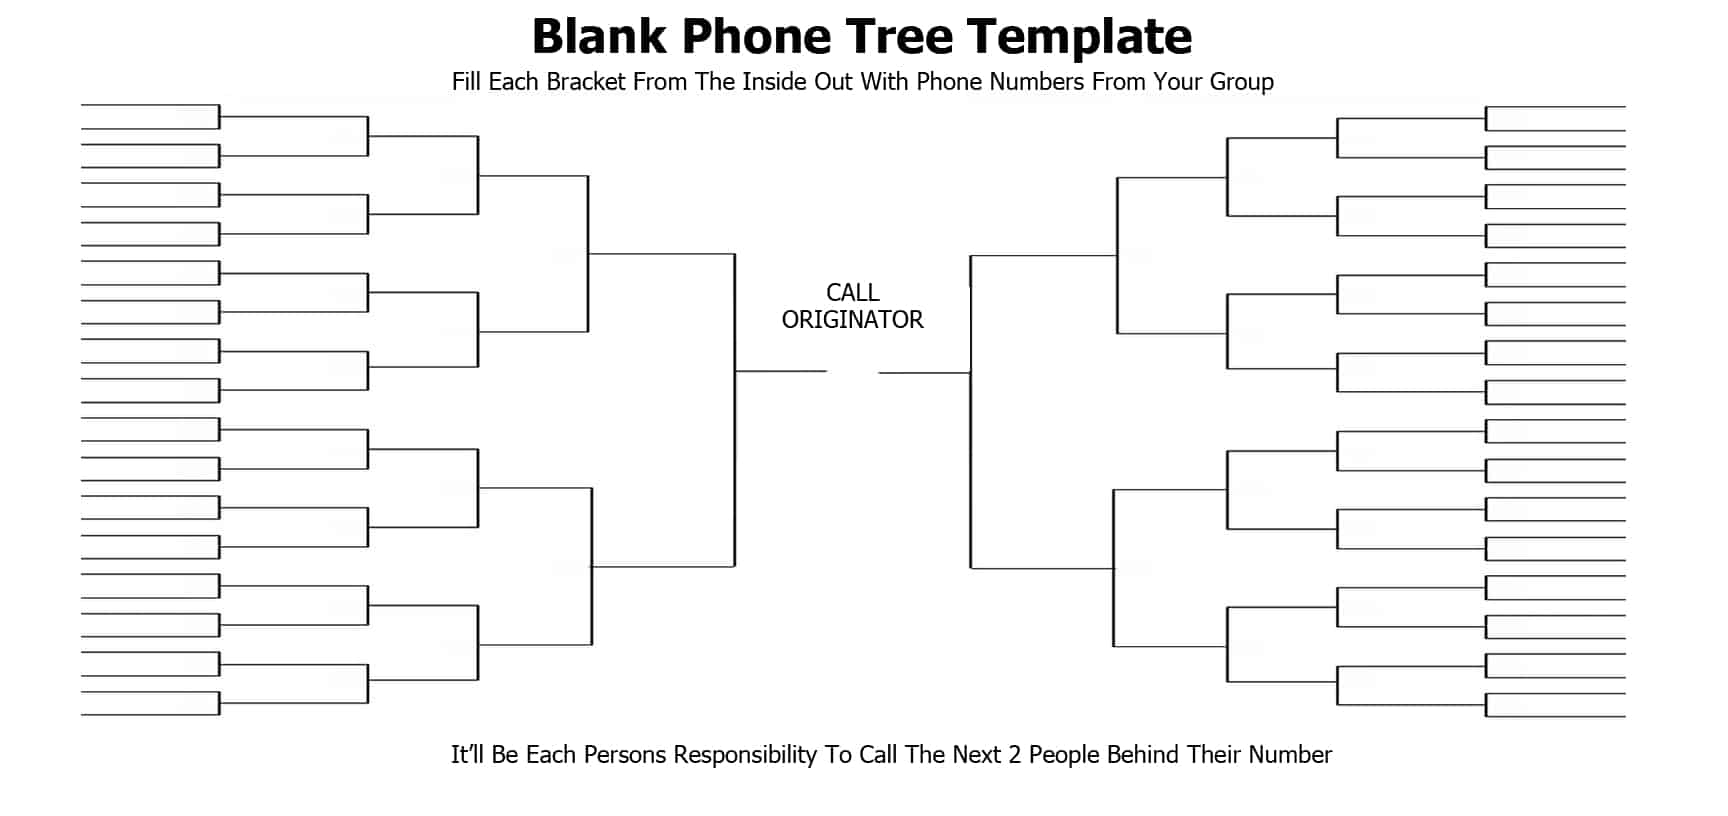 telephone tree template - 5 free phone tree templates word excel pdf formats